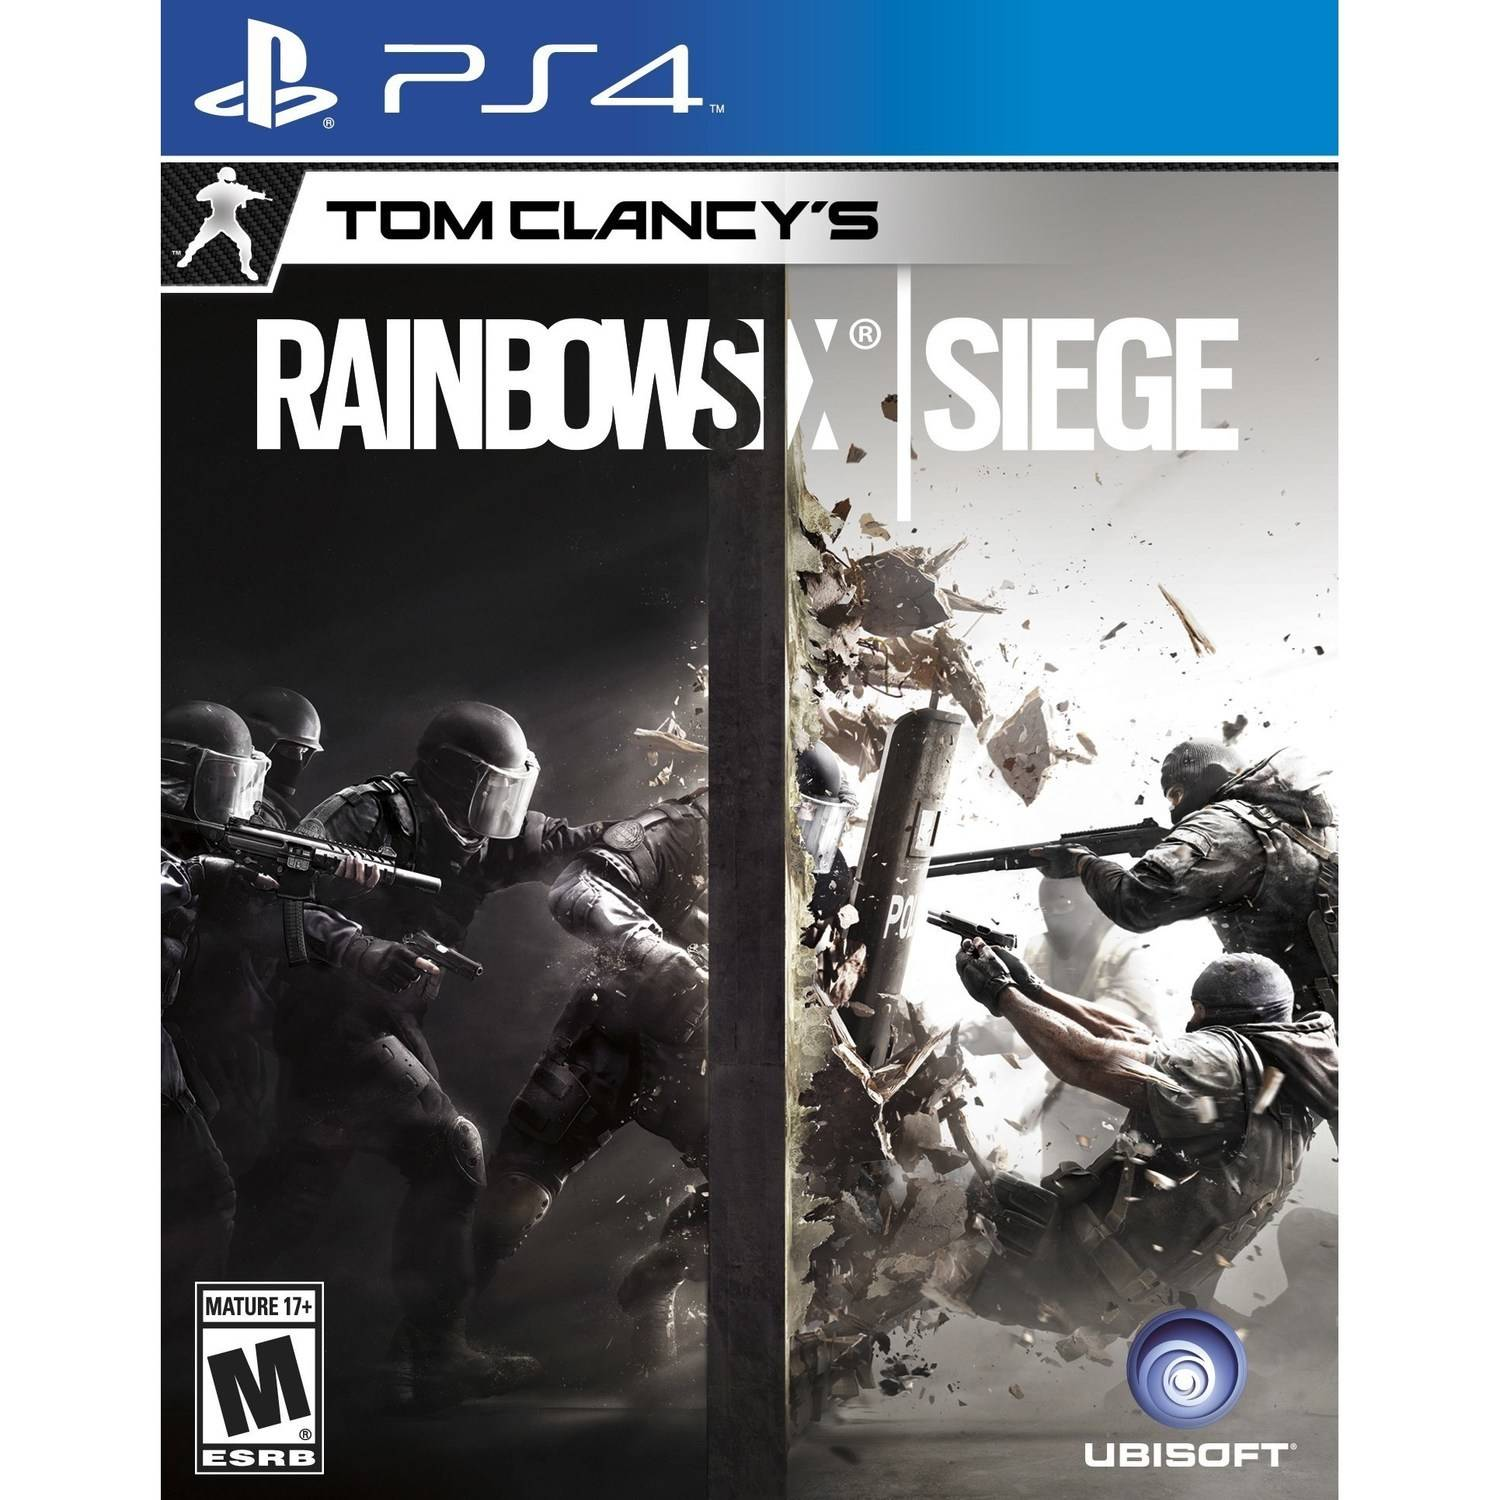 Rainbow Six Siege (PS4) - Pre-Owned